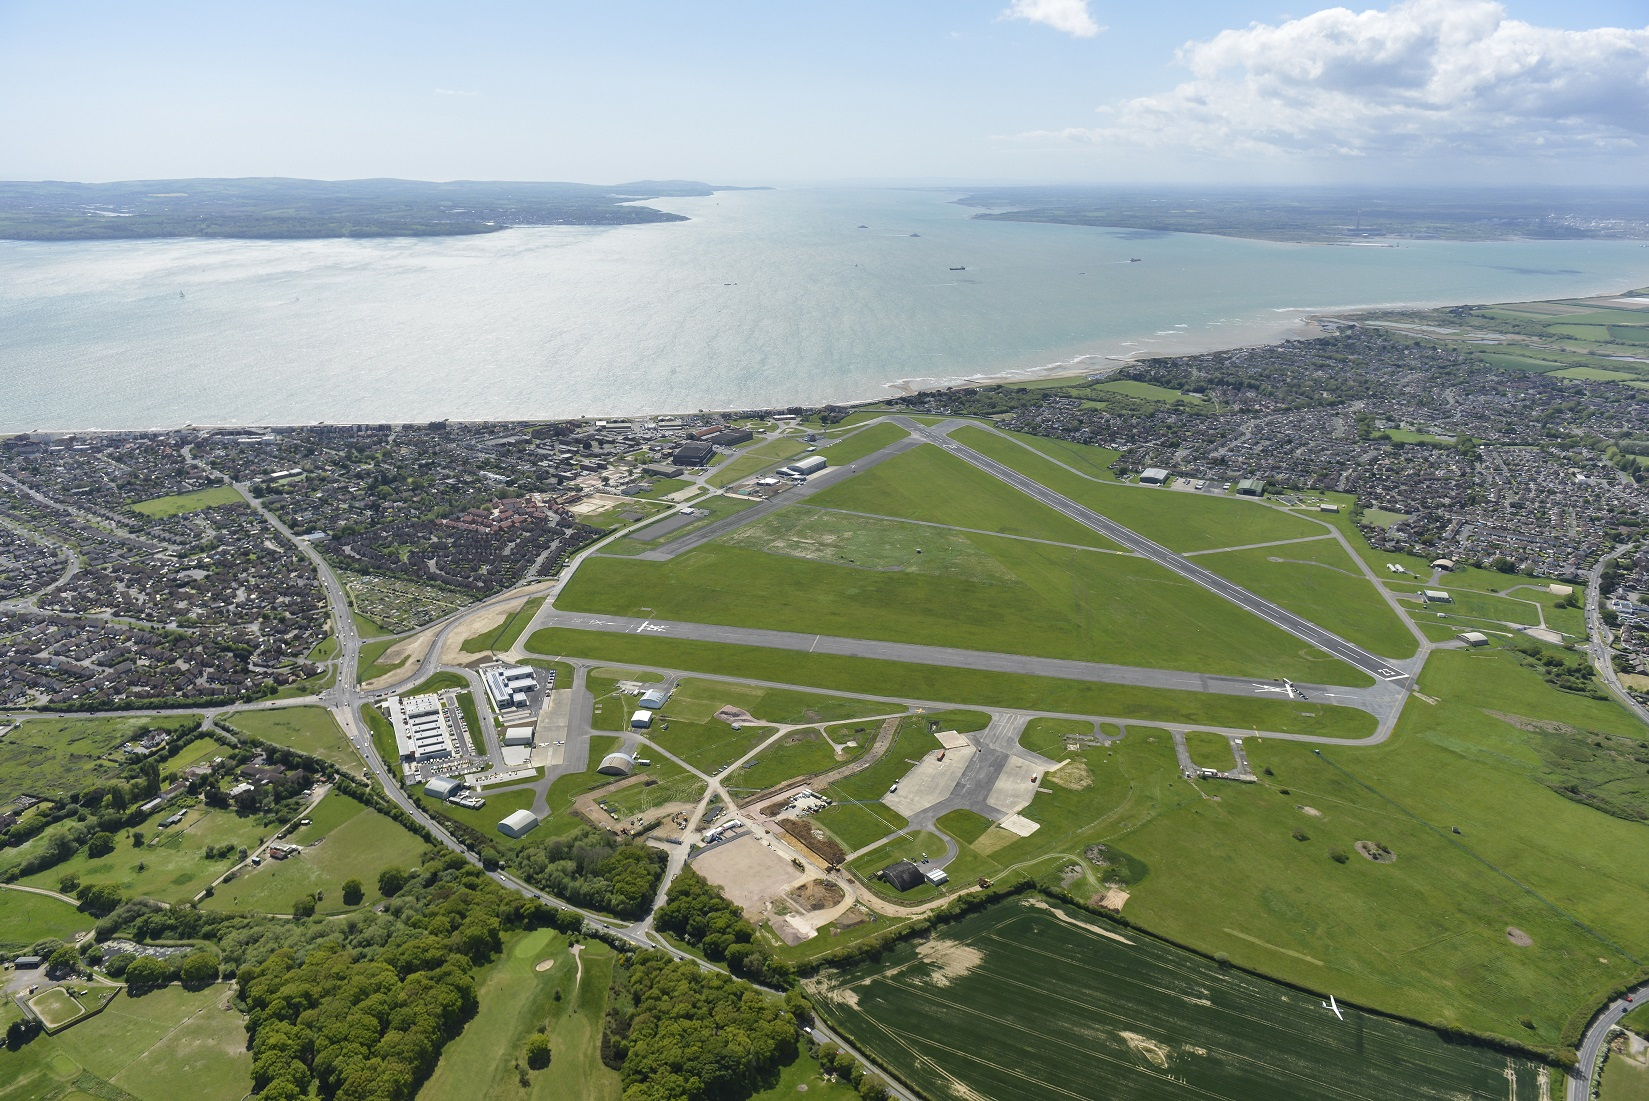 A birds-eye view of Solent Airport, formerly Daedalus, in Hampshire